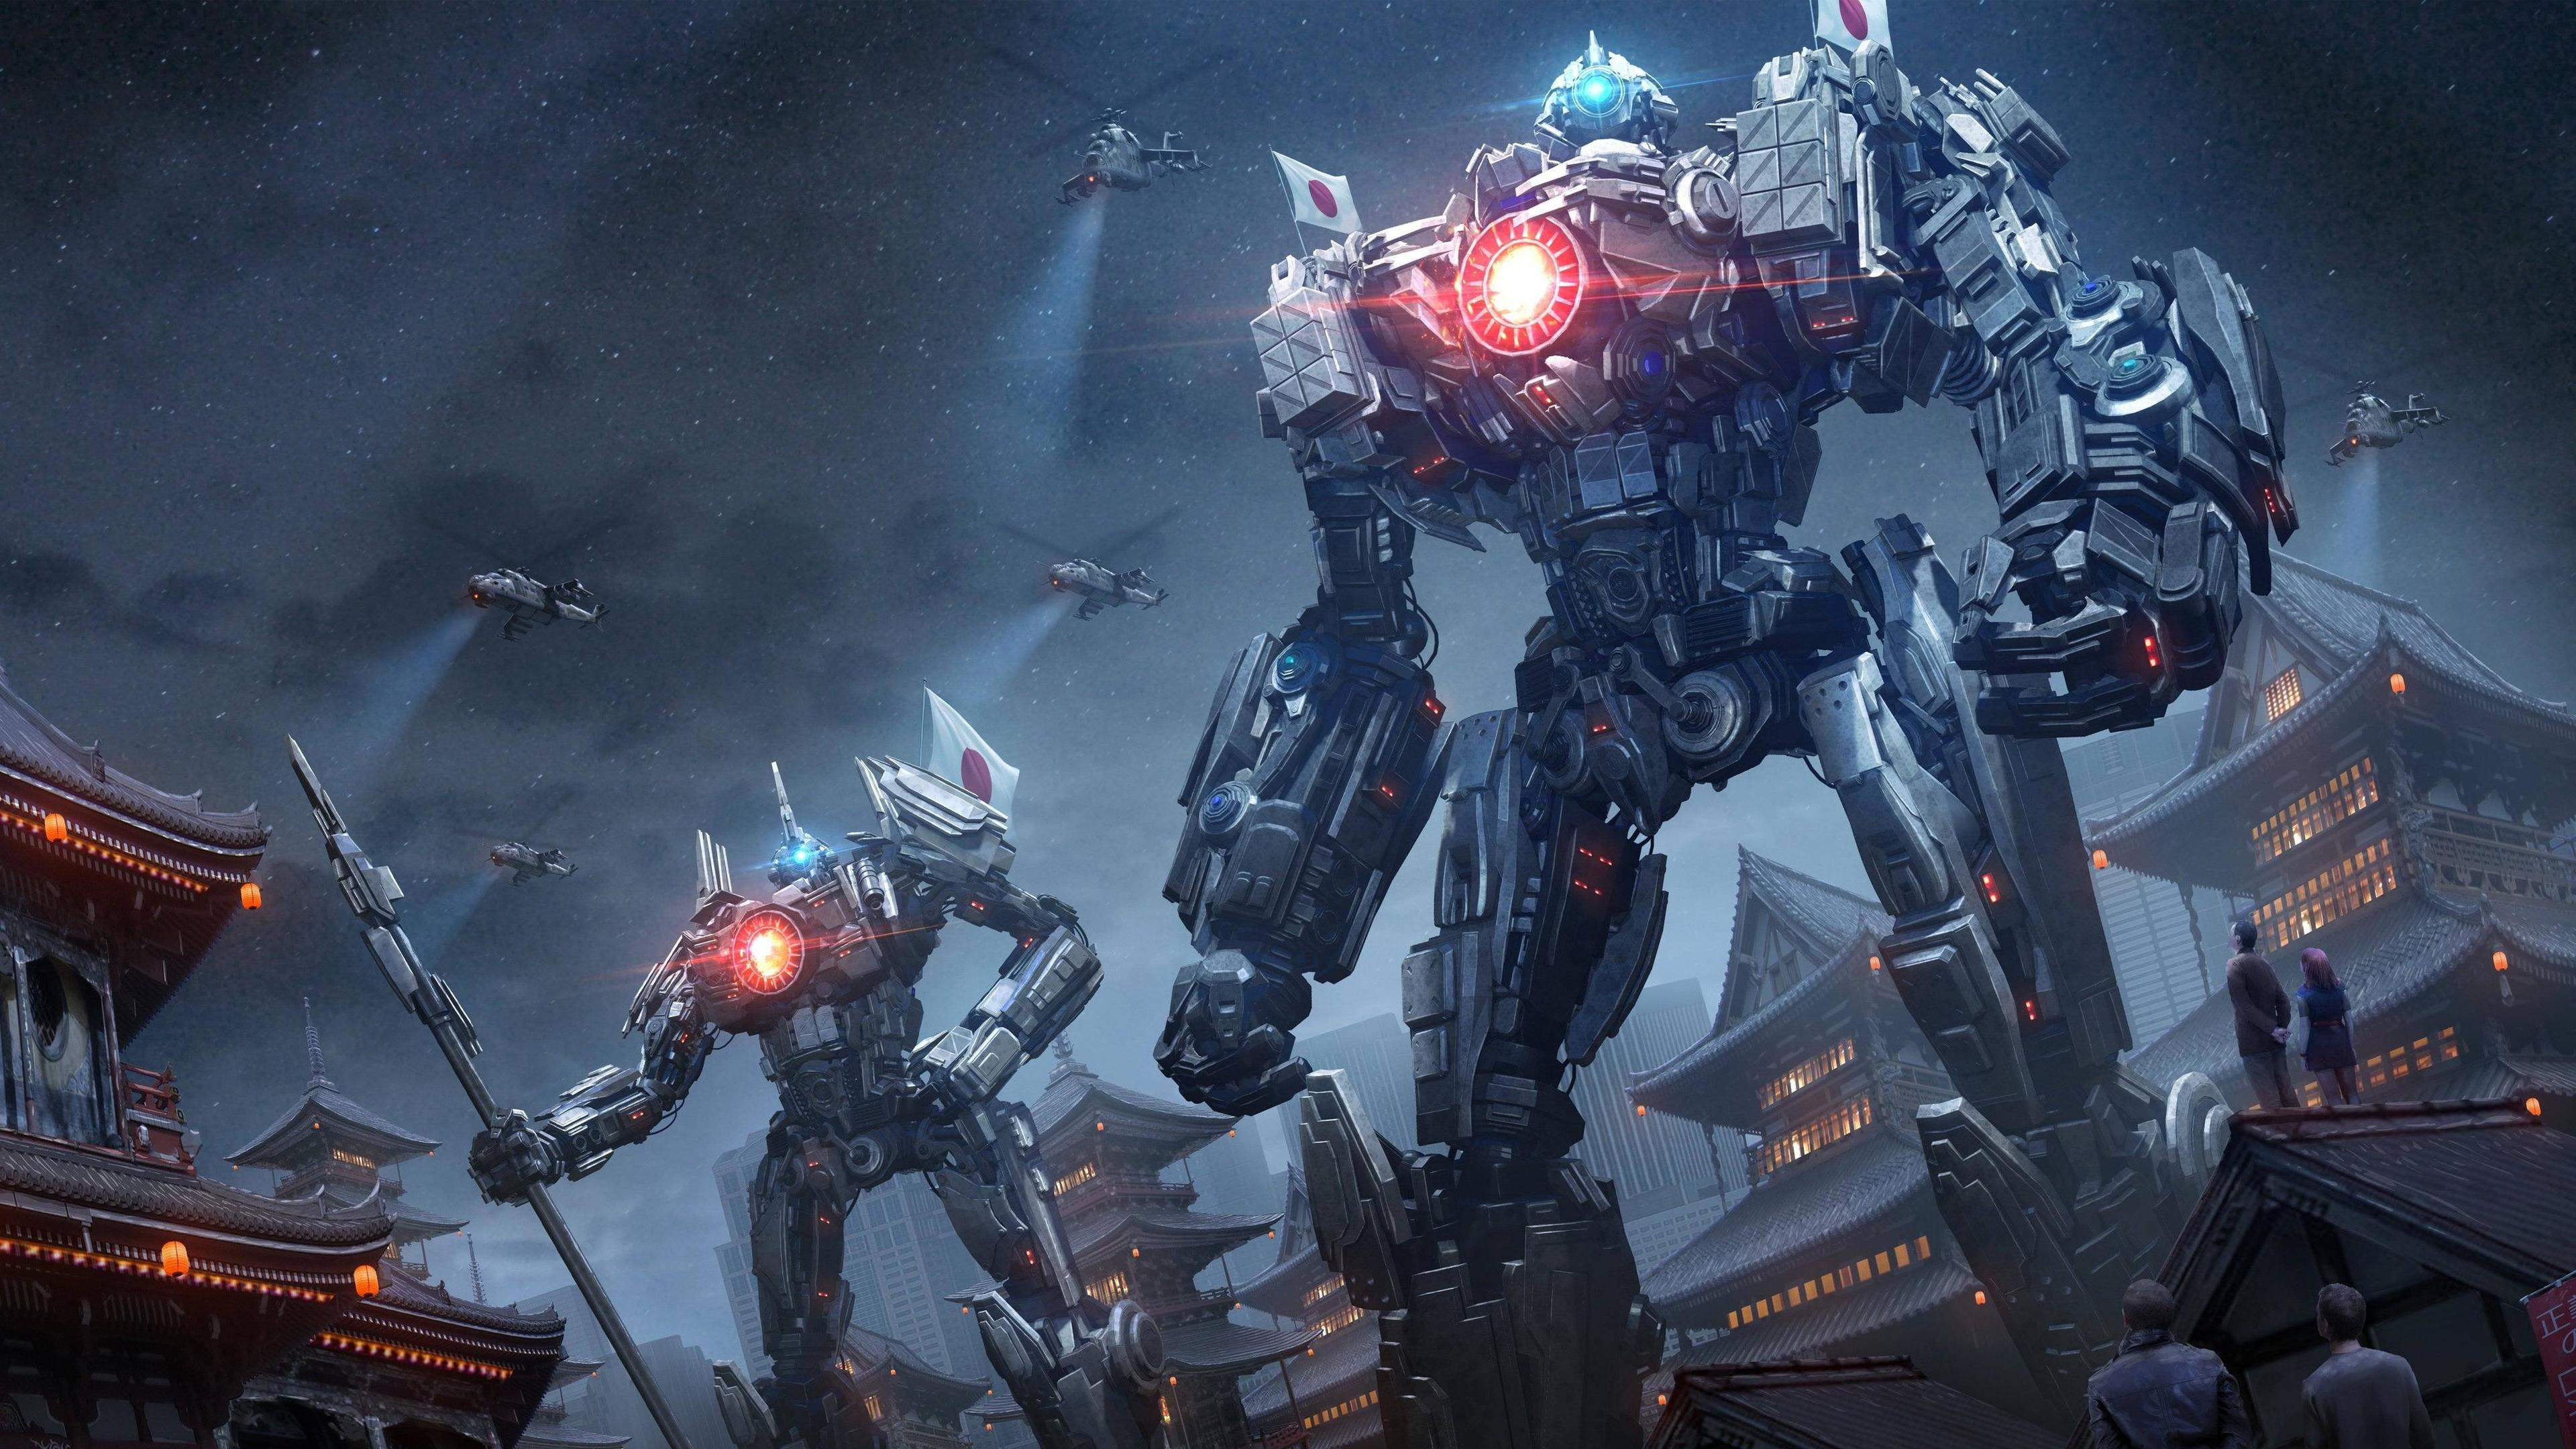 pacific rim maelstrom 2018 1536364233 - Pacific Rim Maelstrom 2018 - scifi wallpapers, pacific rim maelstrom wallpapers, 4k-wallpapers, 2018-movies-wallpapers